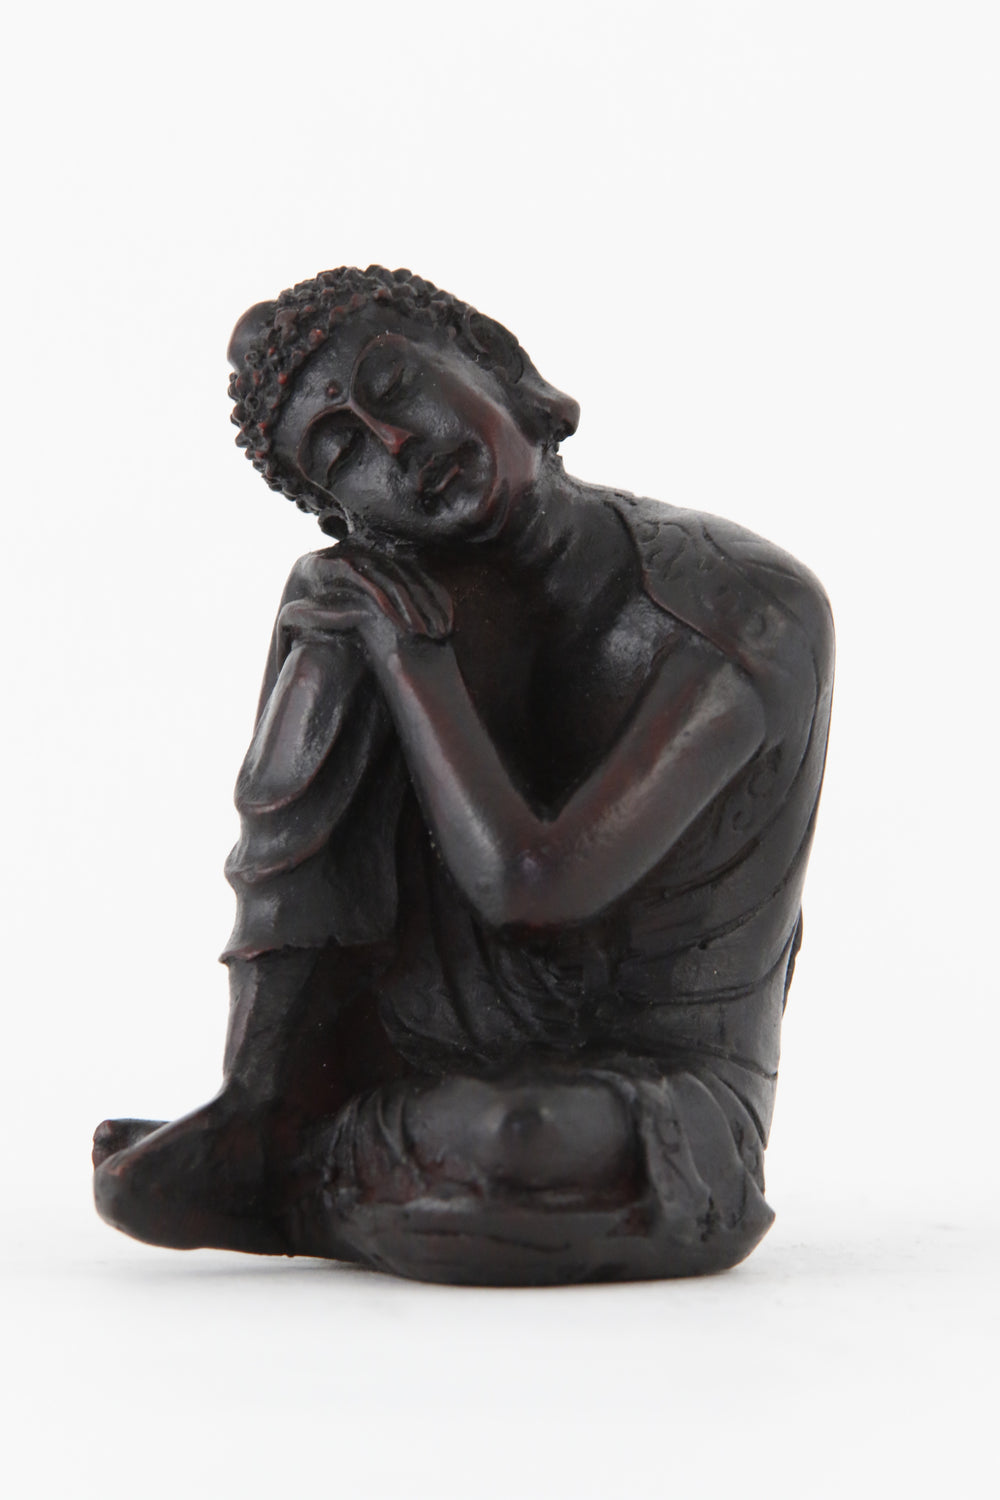 RESTING BUDDHA STATUE DARK SMALL SIDE VIEW